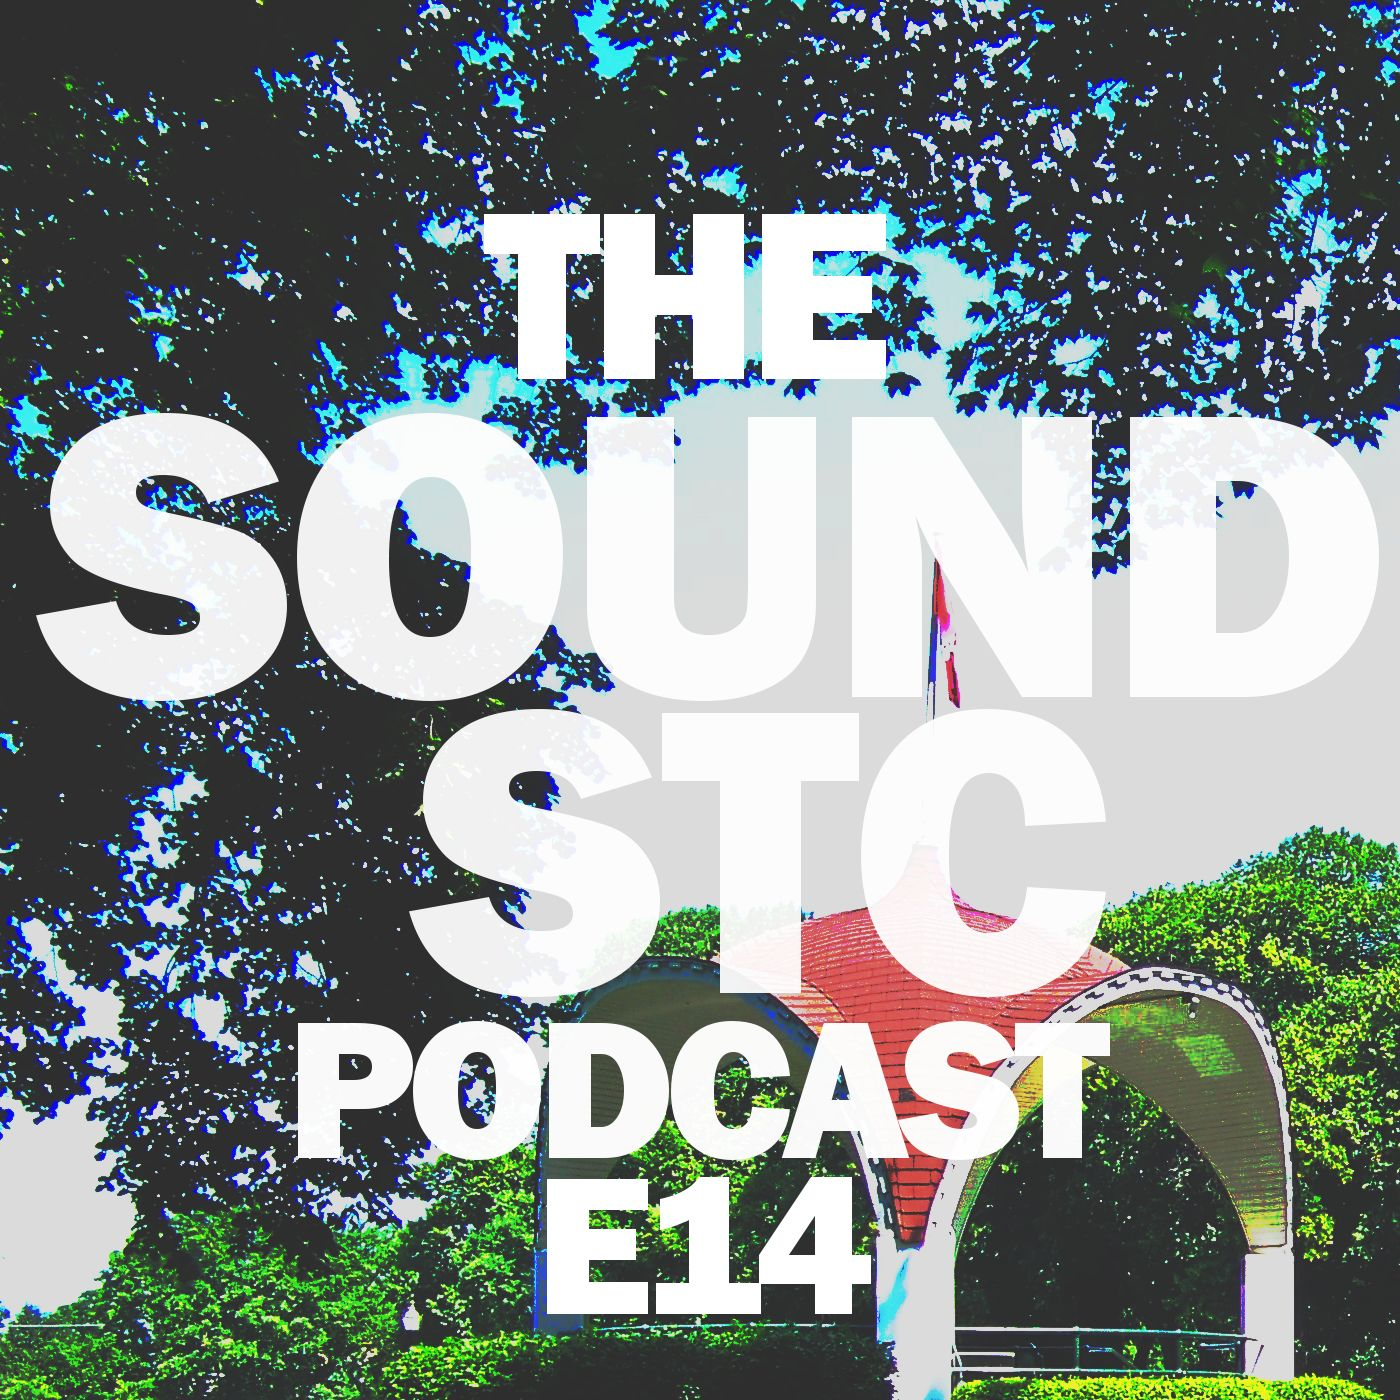 TheSoundSTC